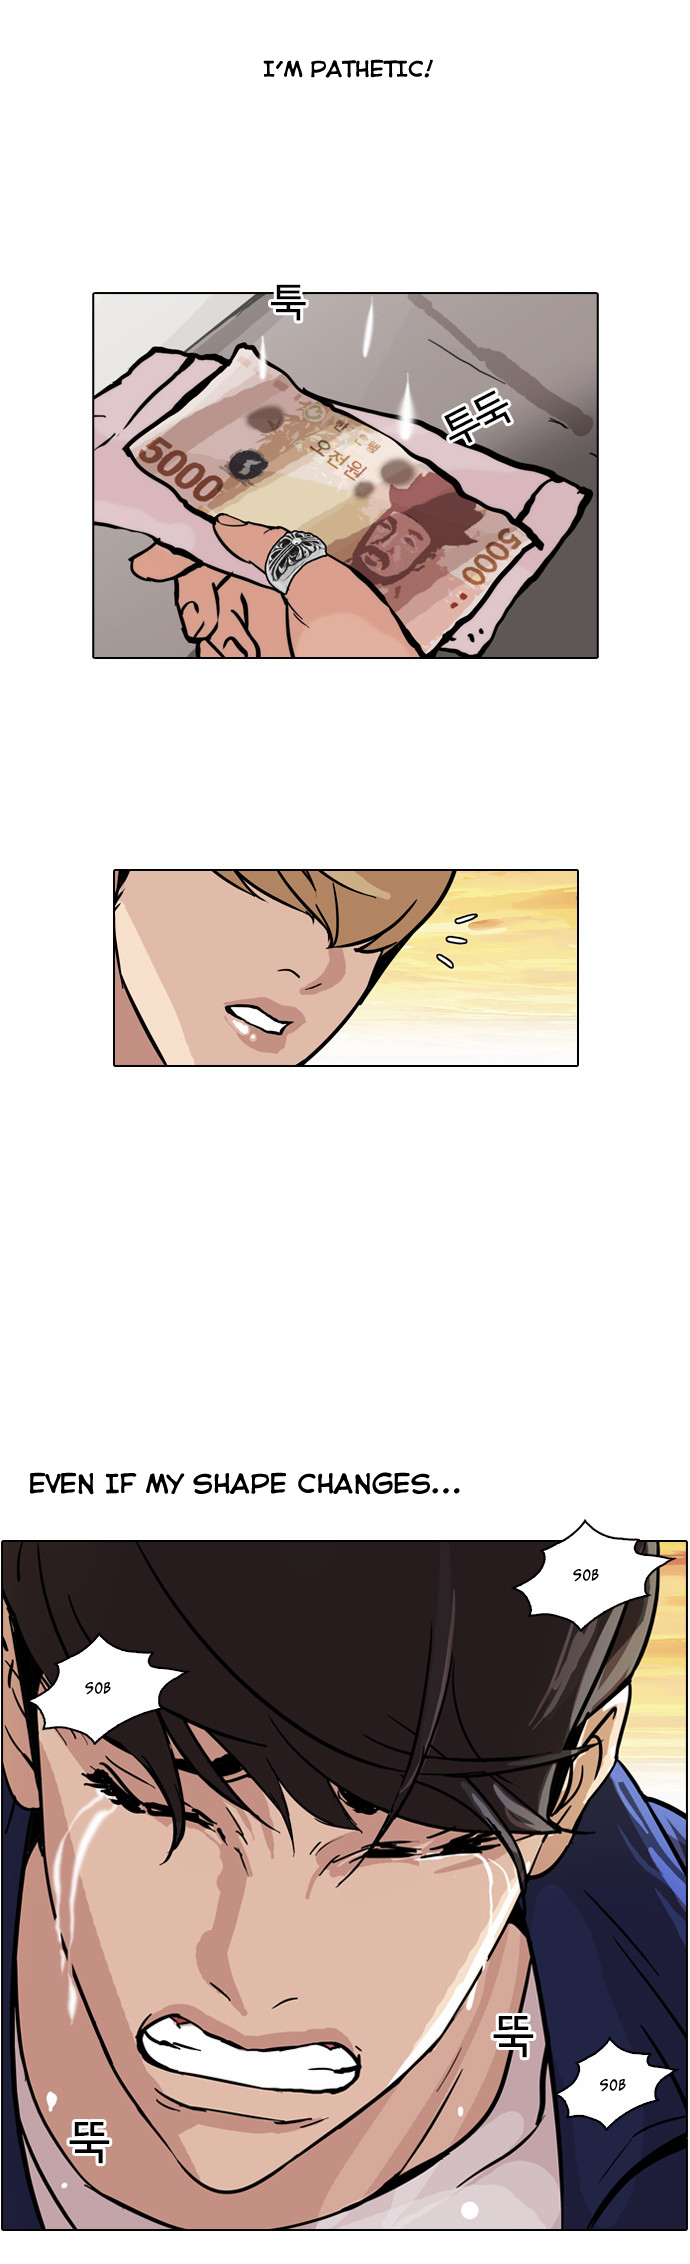 Read manga Lookism Ch.050: Pavlov's Dog [END] online in high quality